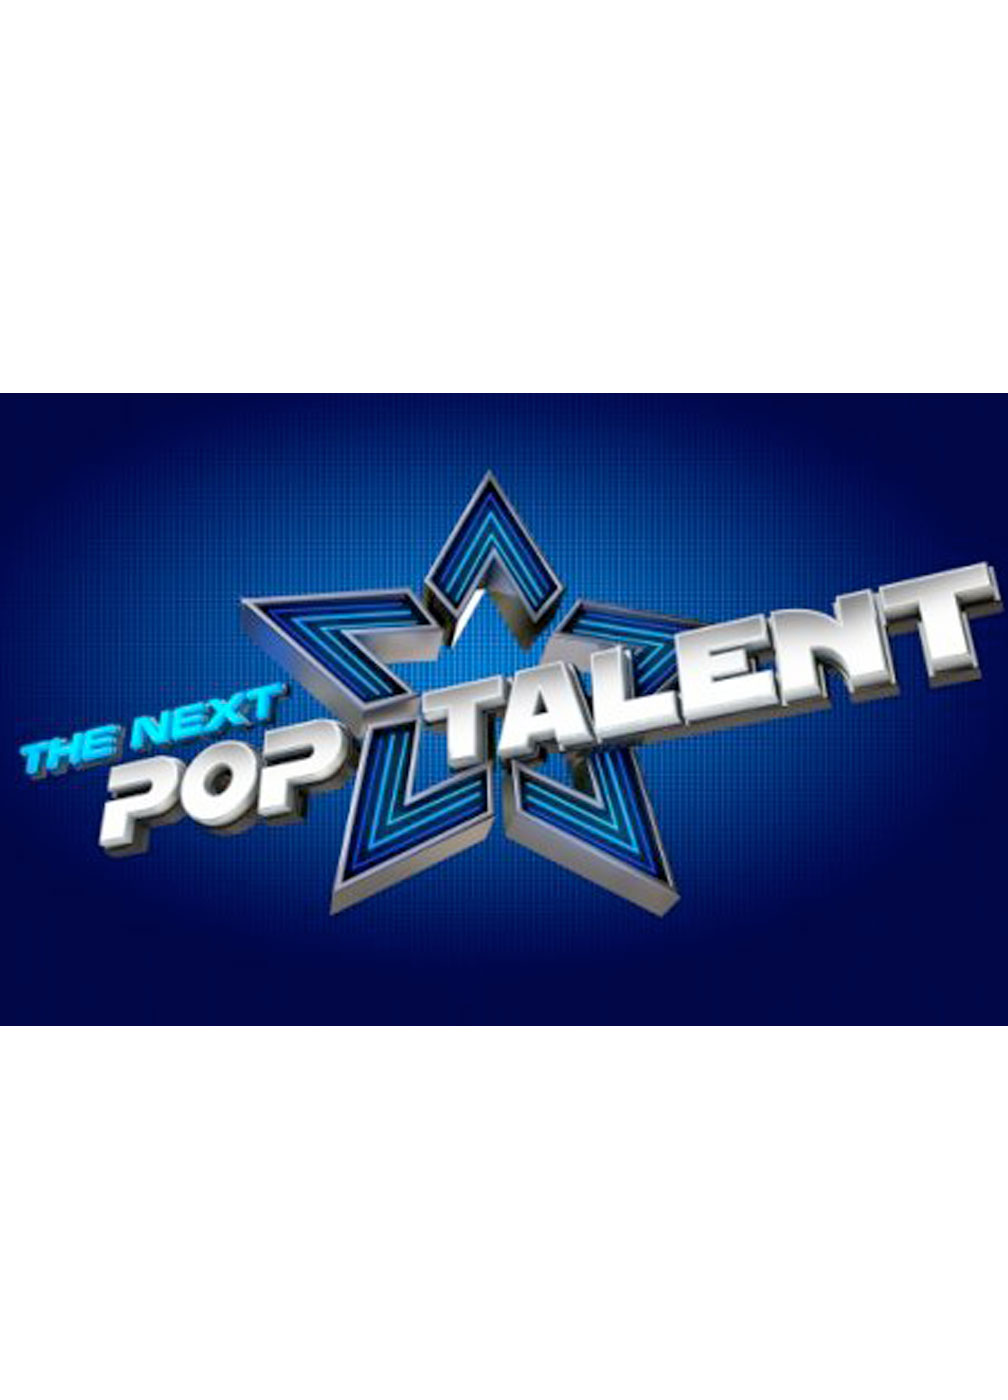 Next-Pop-Talent